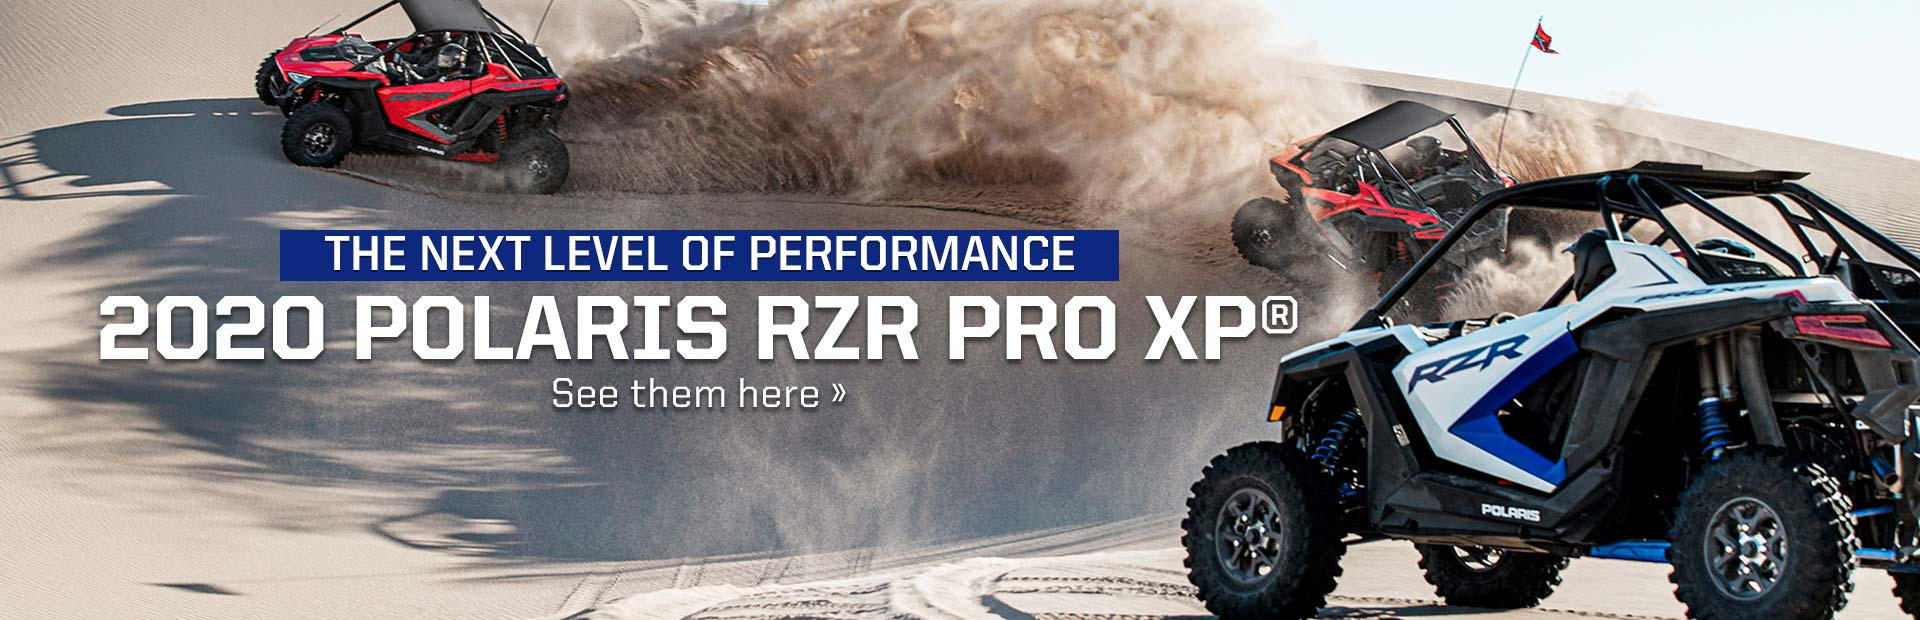 2020 Polaris RZR PRO XP® Click here to see our models now!